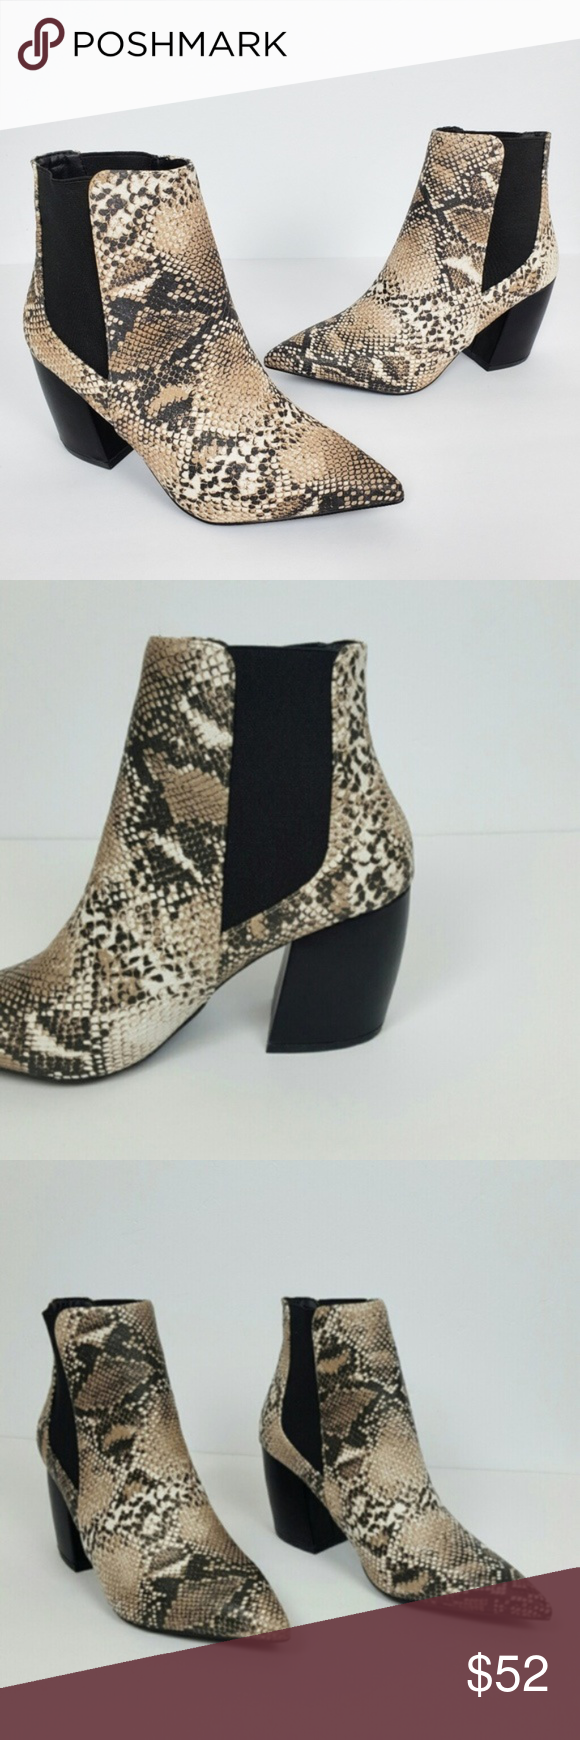 Style of Women`s Snake print Ankle Boot Love this New Style of Women`s Snake print Ankle Boot  Color Brown - Black Perfect to complement your favorite outfit and be ready for the day! Material: PU LEATHER Heel high : 3 Shoes Ankle Boots & Booties #snakeprintbootsoutfit